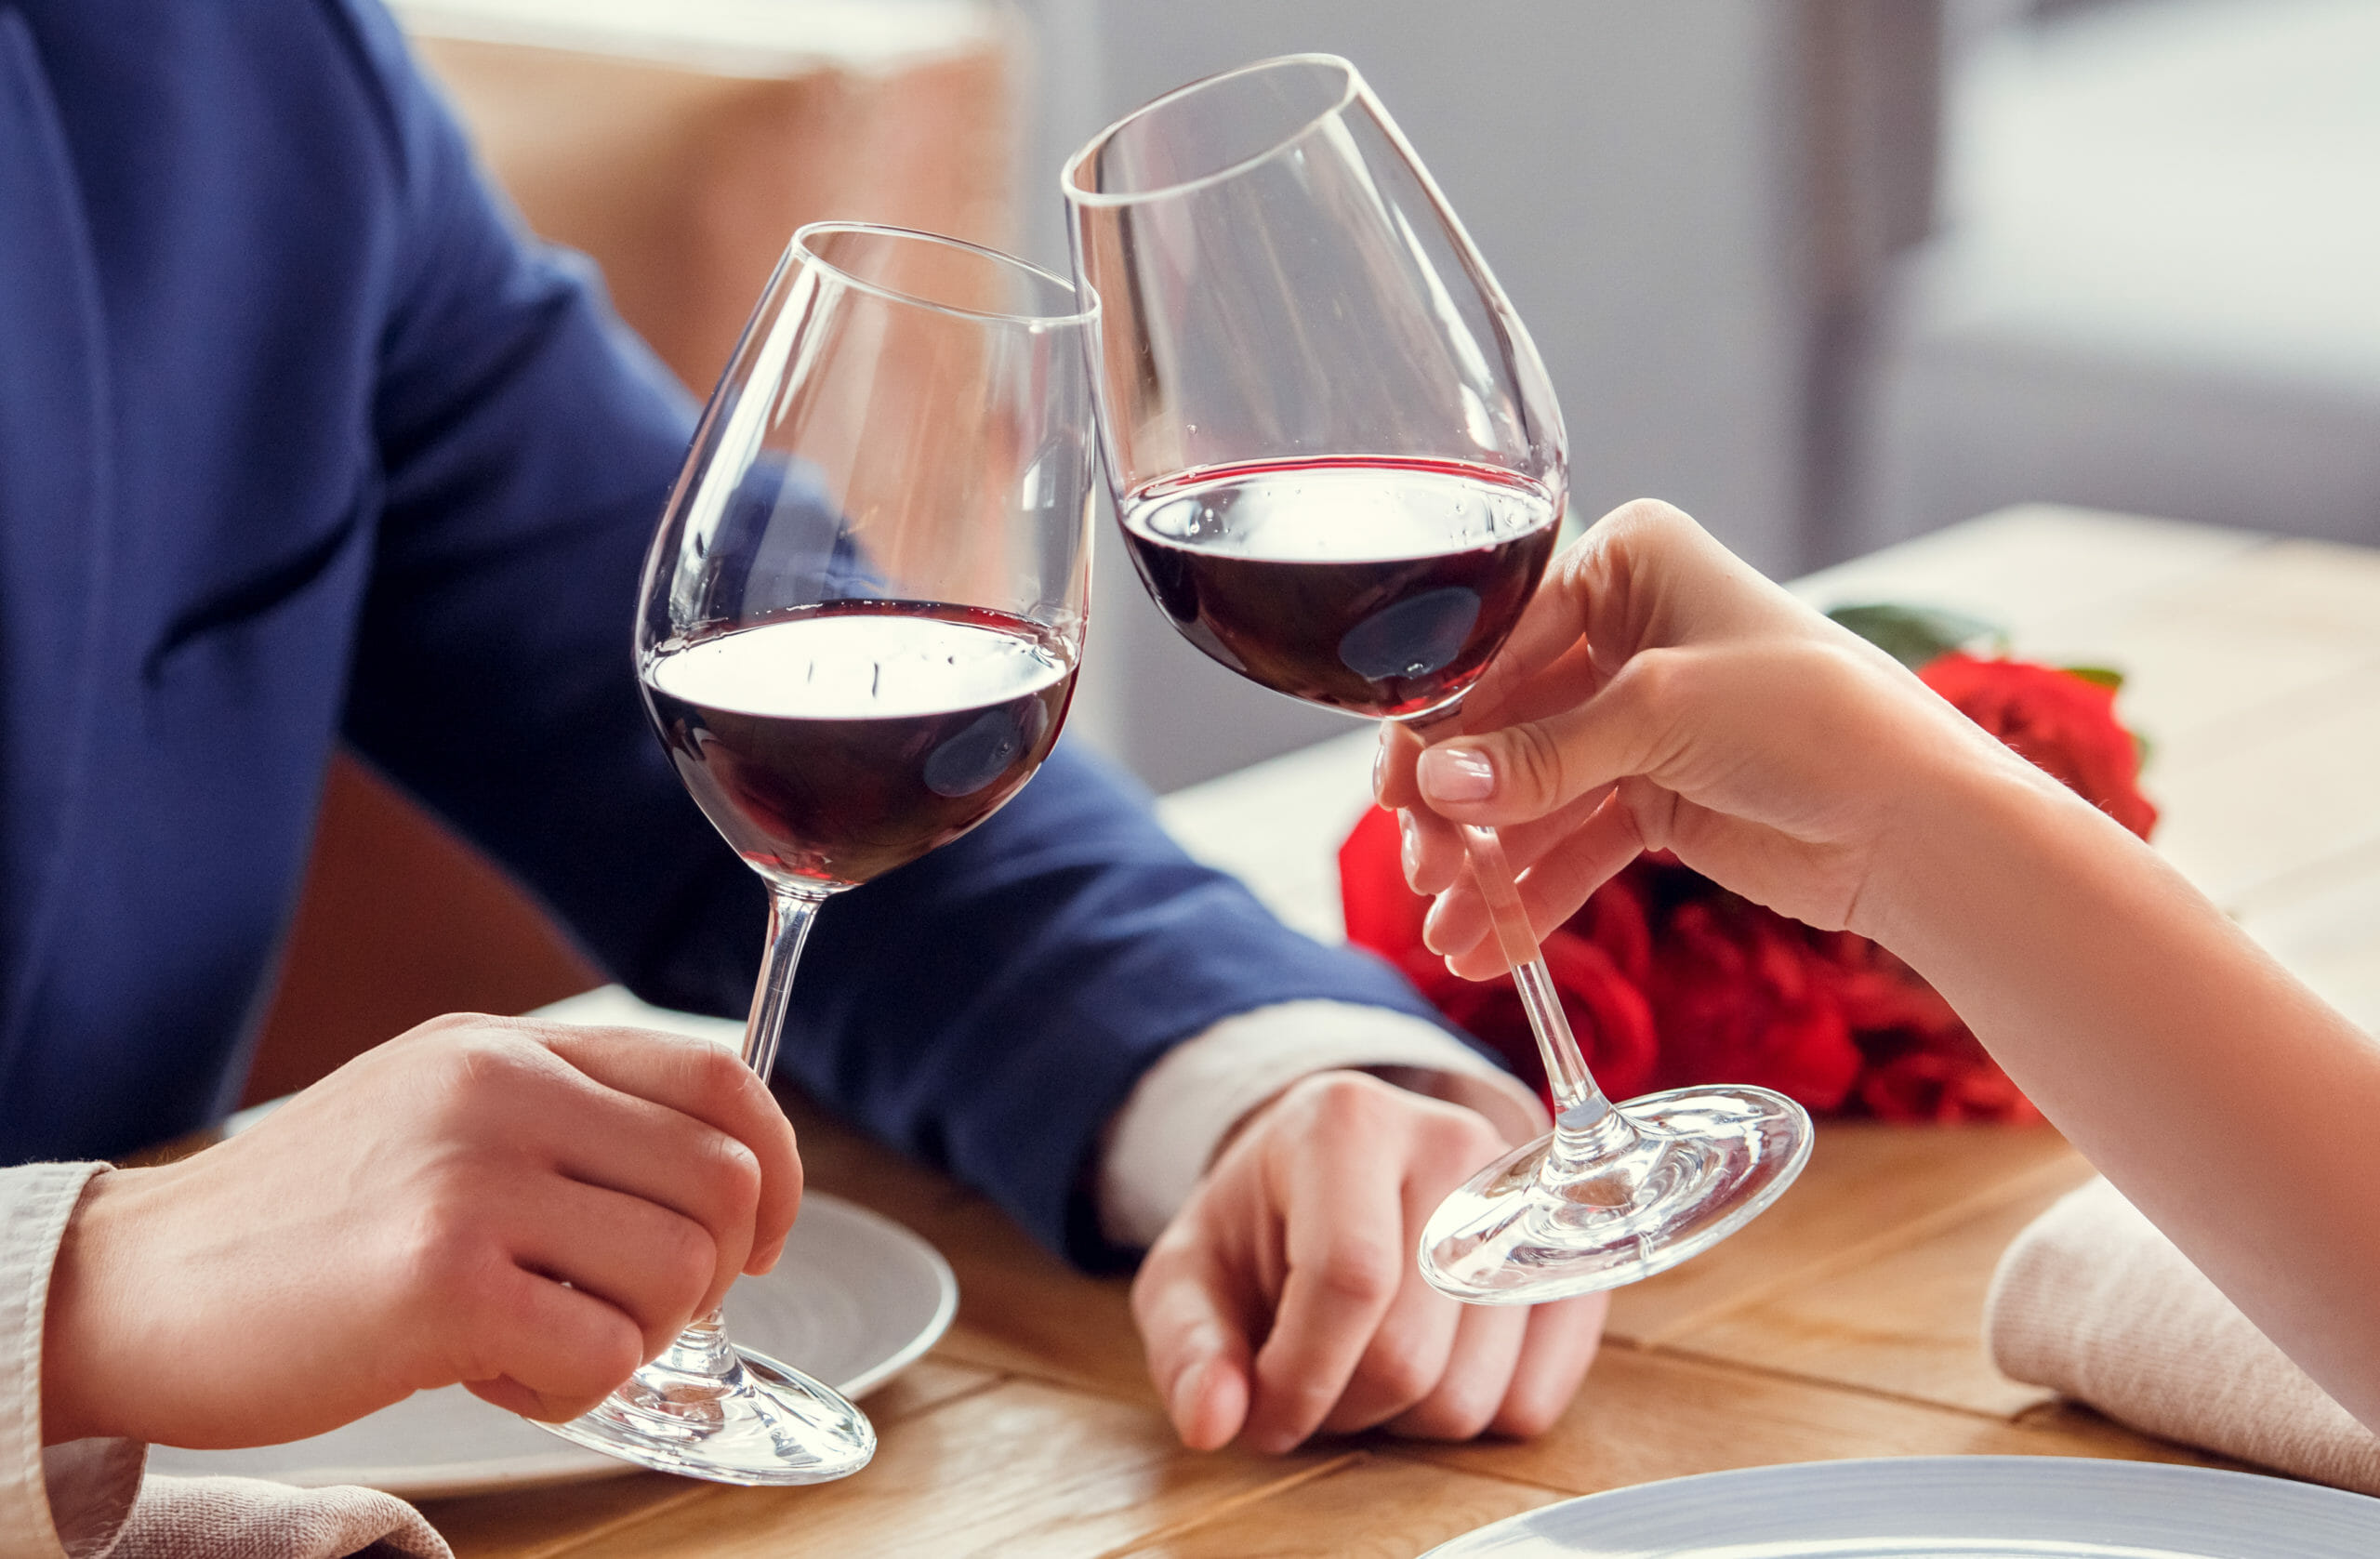 young-man-woman-on-date-restaurant-1264876594